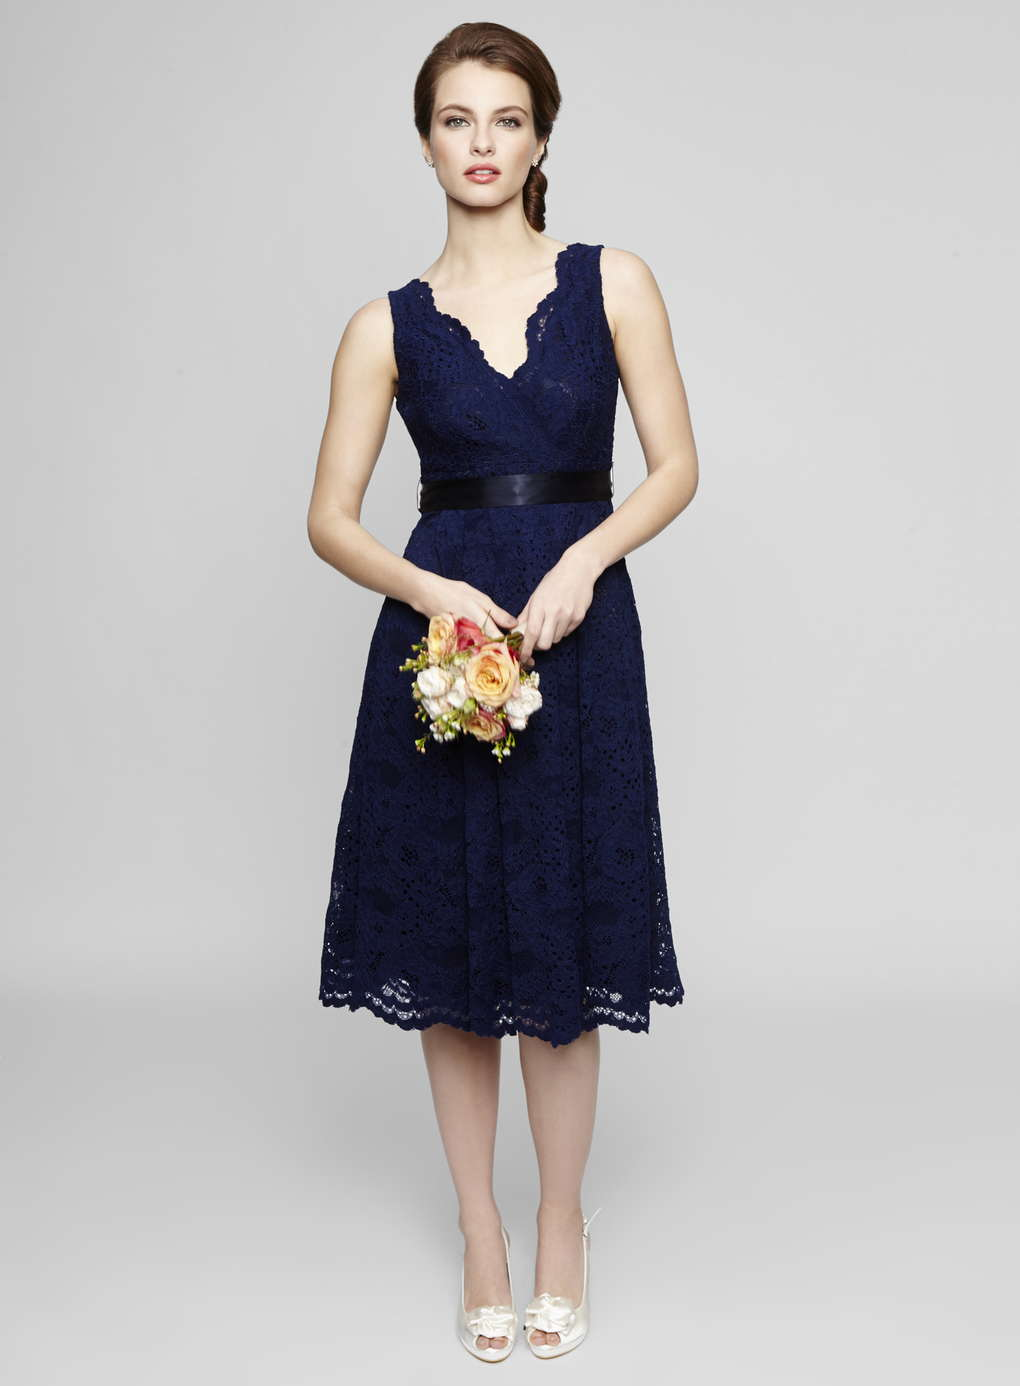 Sleeveless V Neck Tea Length Lace Bridesmaid Dress